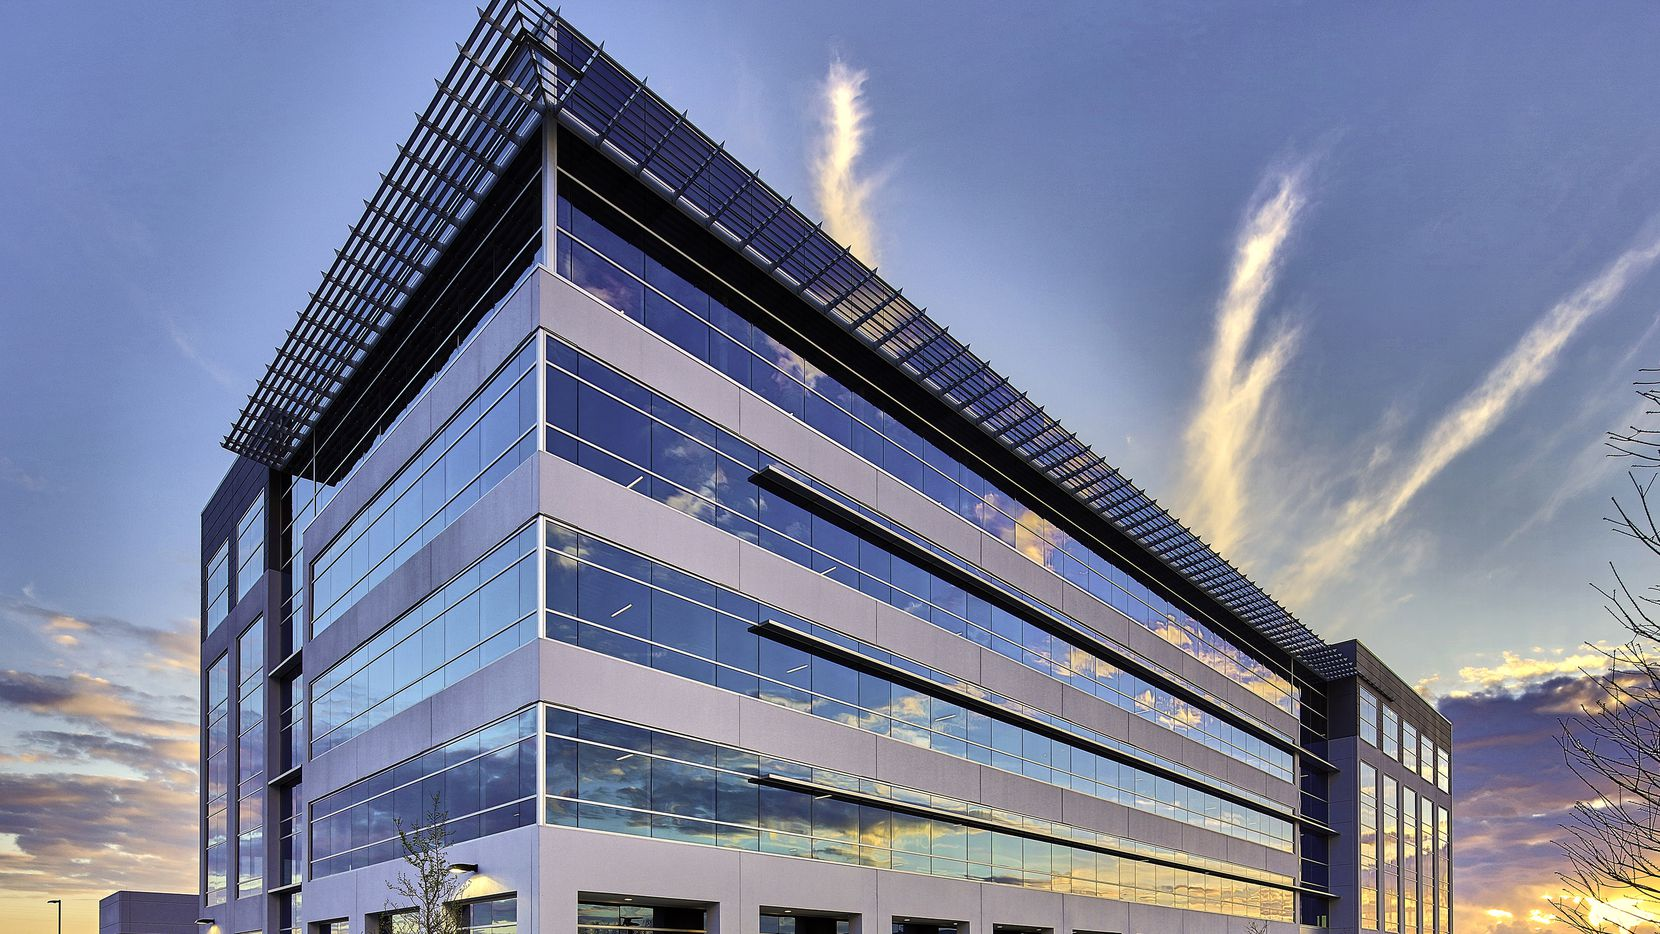 BroadSoft has leased a floor of office space in the new Platinum Park office building in West Plano.